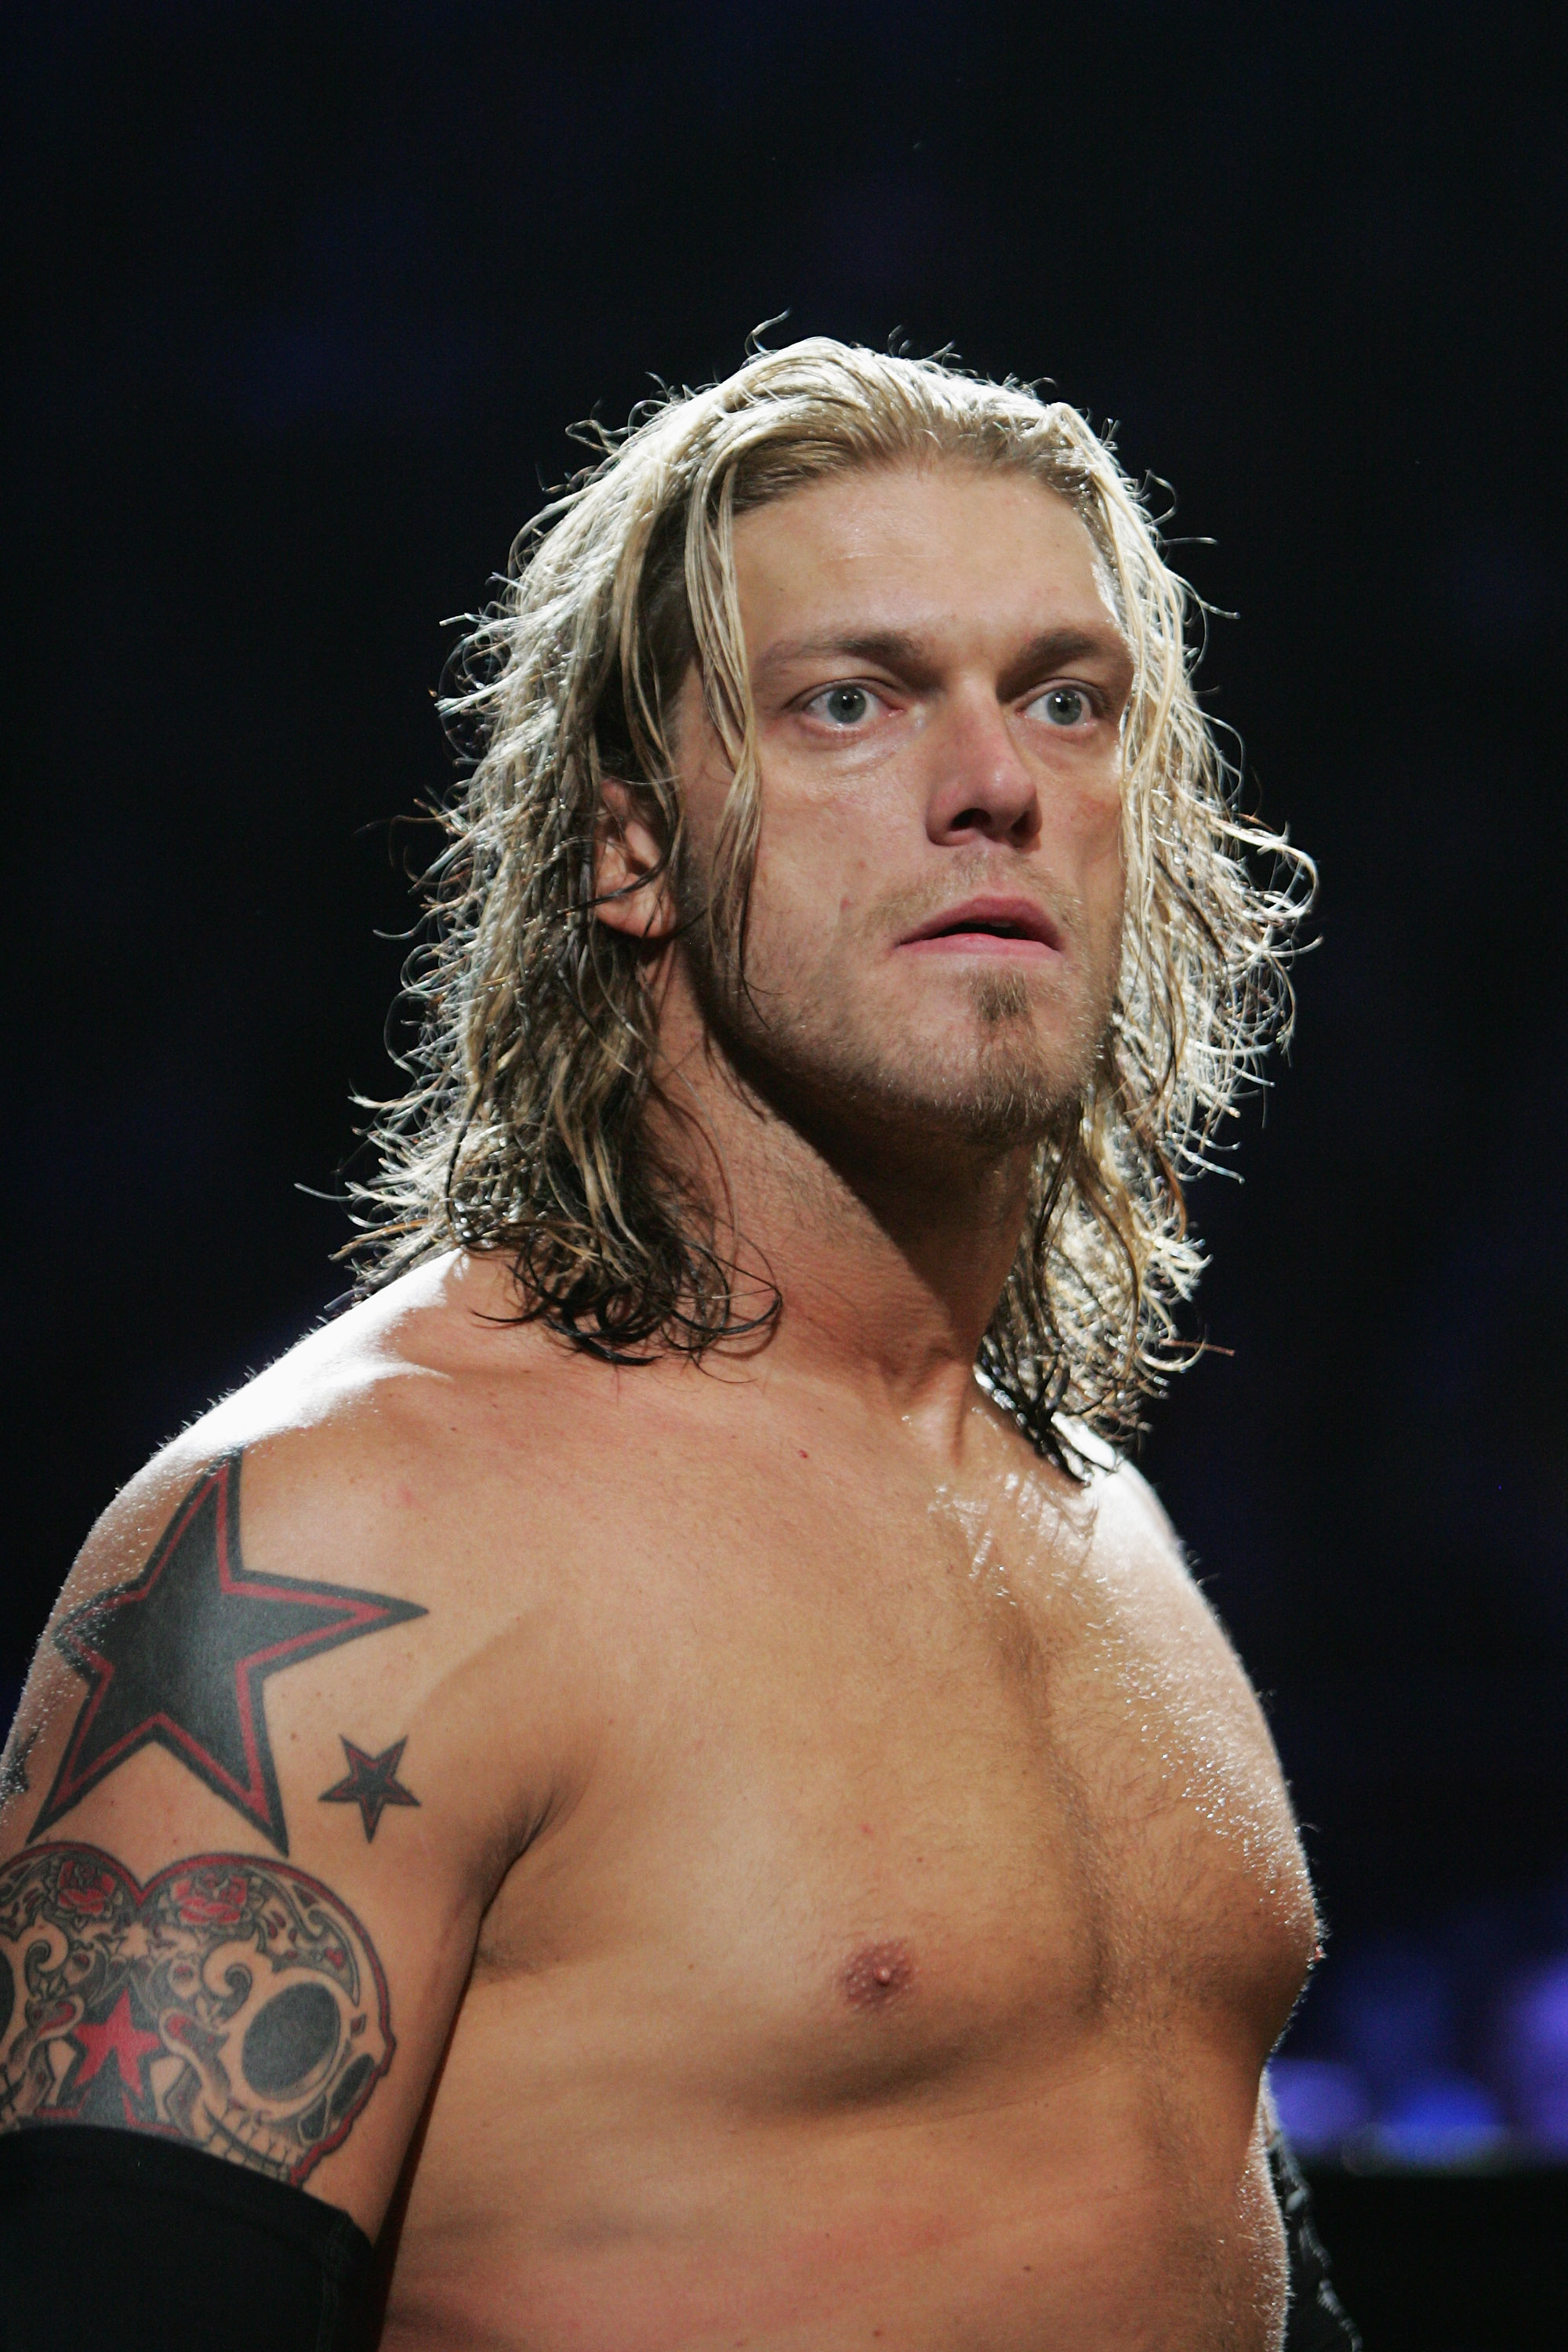 SYDNEY, AUSTRALIA - JUNE 15:  World Heavyweight Champion Edge looks on during WWE Smackdown at Acer Arena on June 15, 2008 in Sydney, Australia.  (Photo by Gaye Gerard/Getty Images)